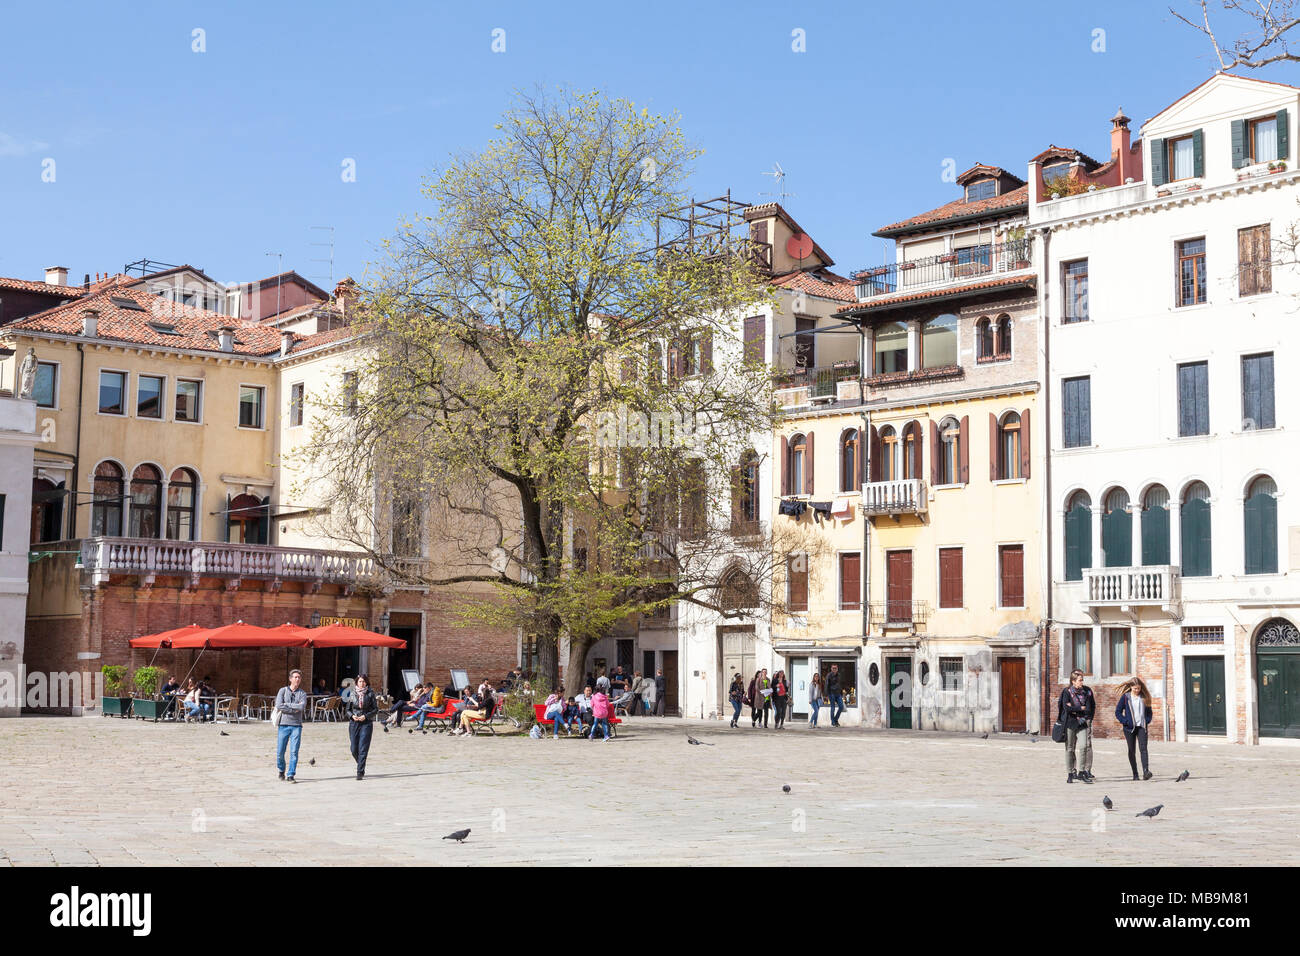 Campo San Polo, San Polo, Venice, Veneto, Italy in spring with local Venetians going about daily life  relaxing in the sunshine - Stock Image